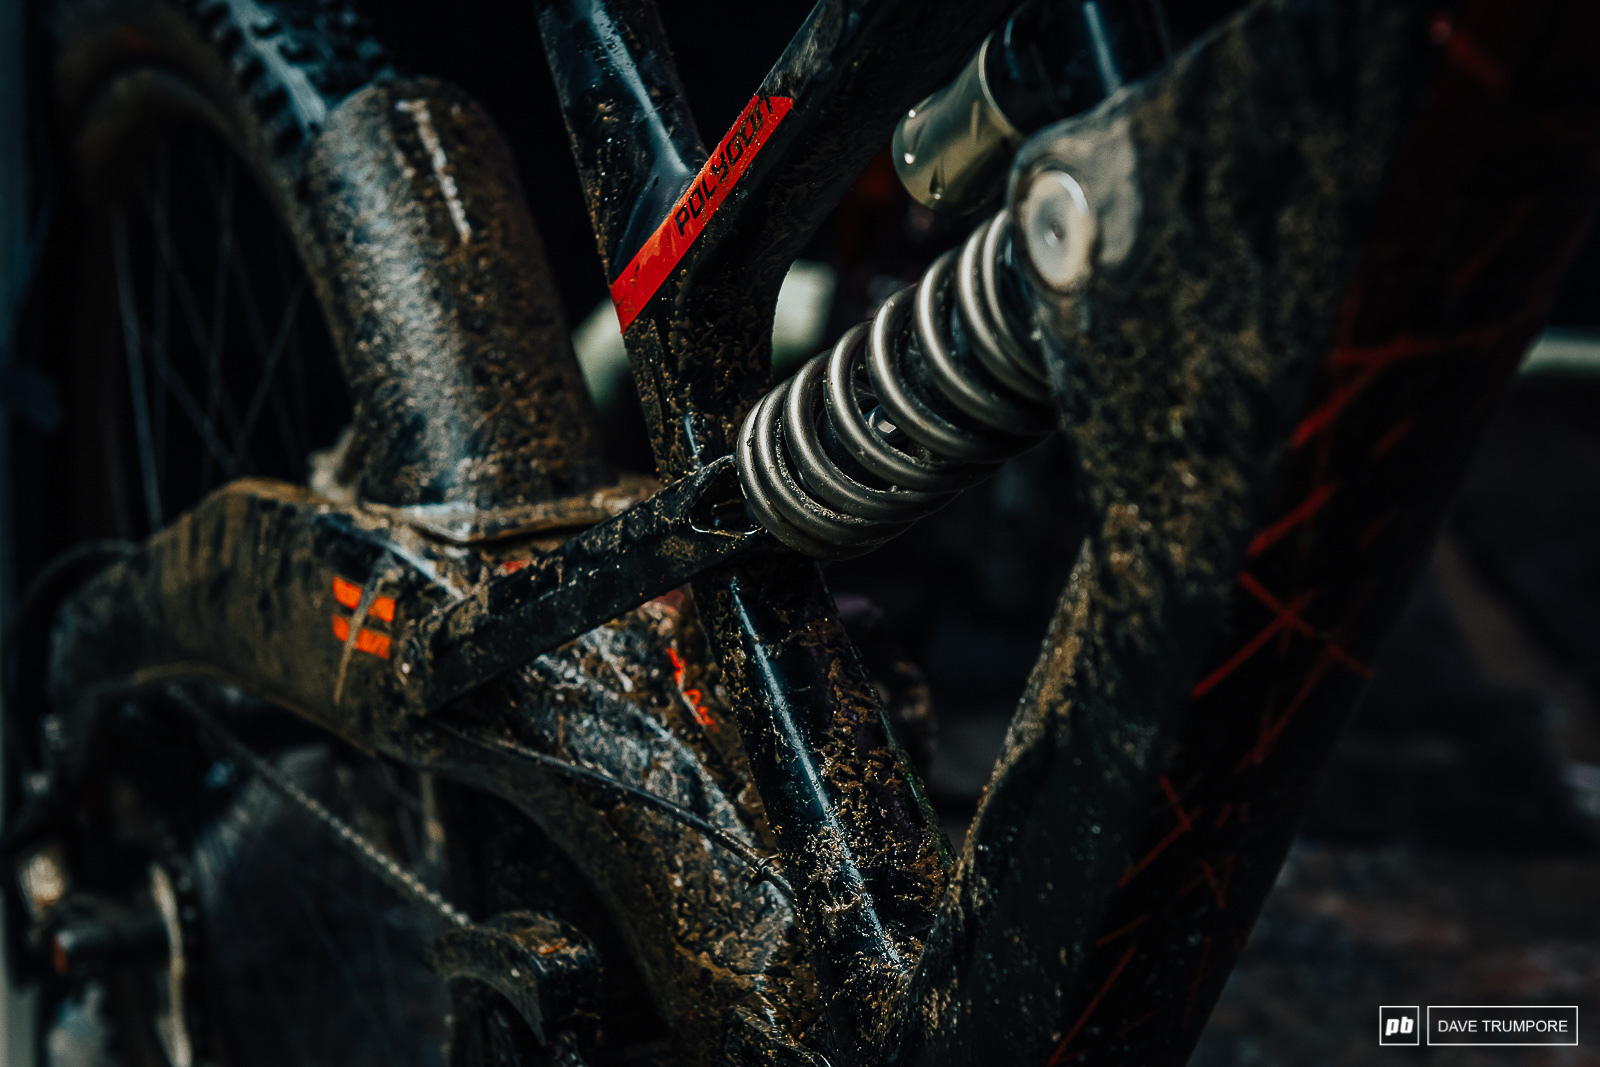 equipment covered in water bud and grit at all times